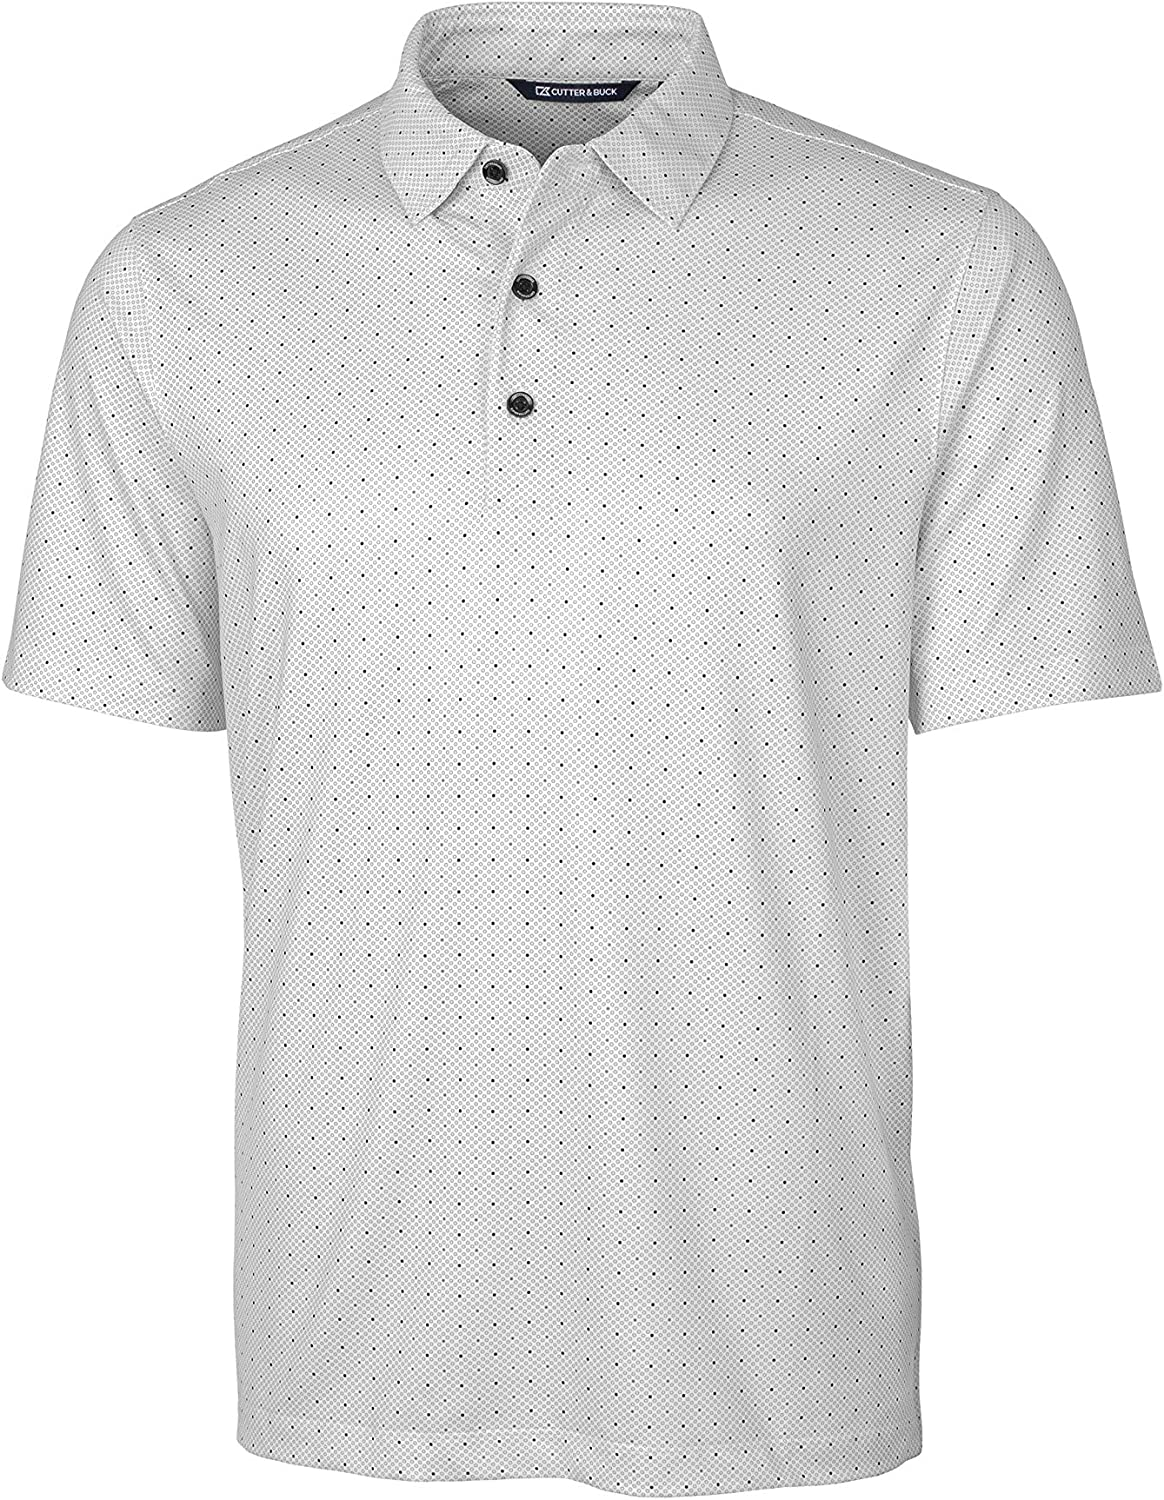 Cutter Buck Max 45% OFF Spasm price Men's Polo